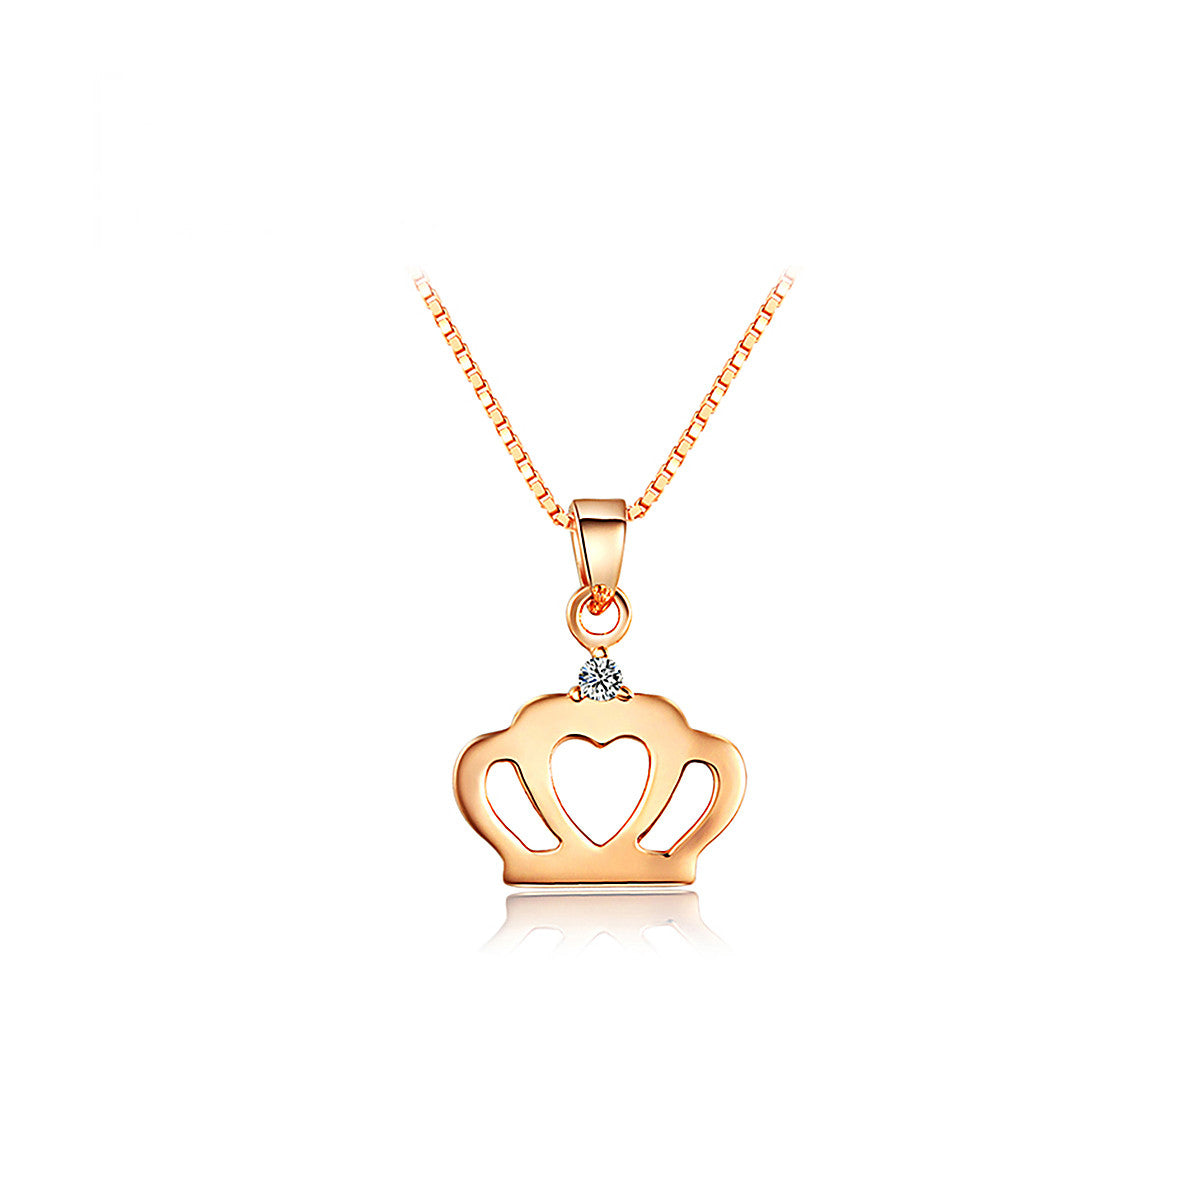 fashion royal kingdom item on from women for pendant necklaces hearts chain accessories sora silver game crown jewelry necklace men in